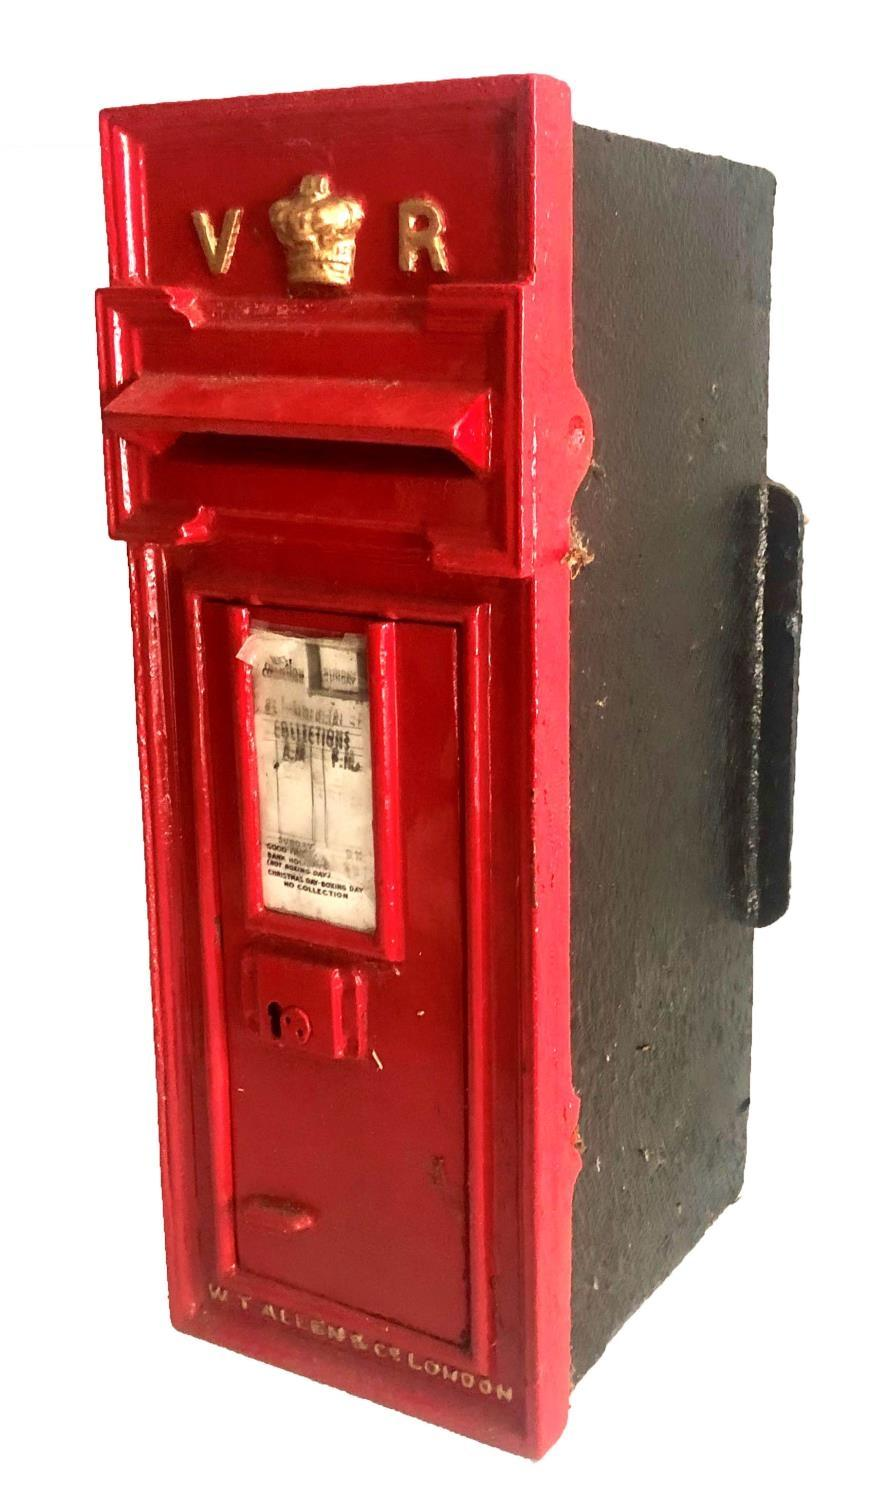 Lot 683 - W.T ALLEN & CO., LONDON, AN ORIGINAL VICTORIAN CAST IRON WALL MOUNTING LETTER BOX Complete with key.